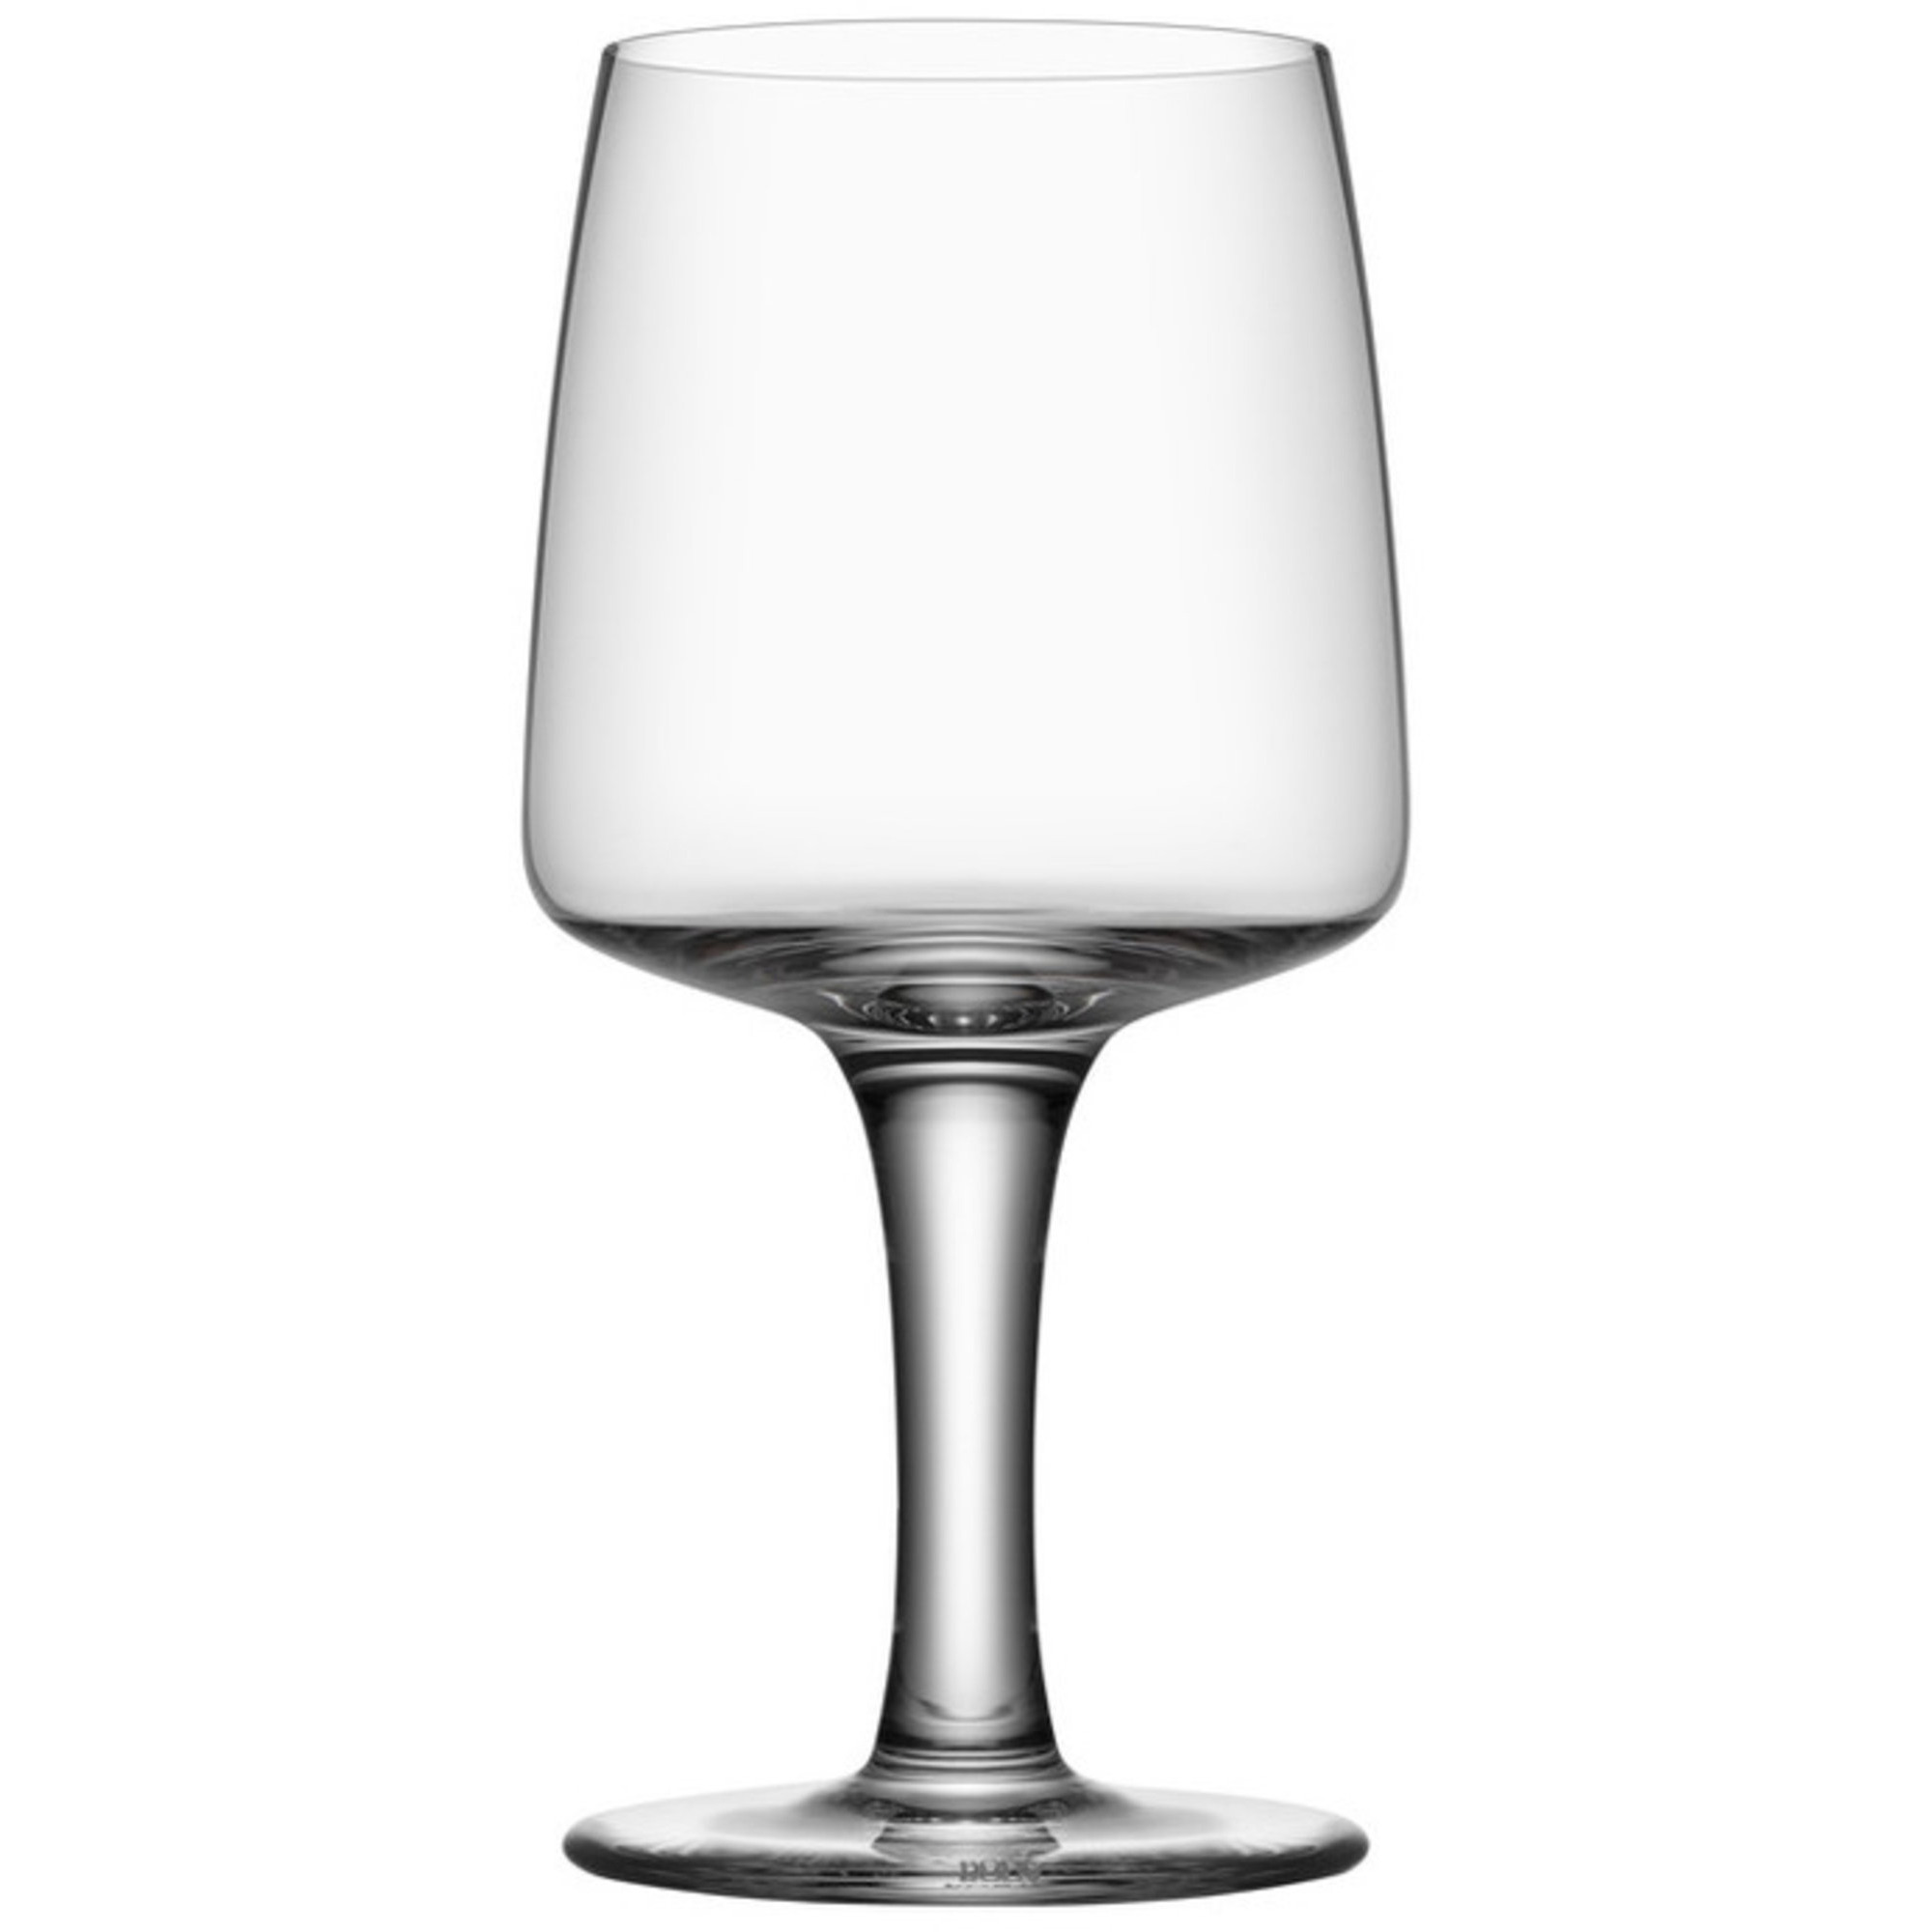 Kosta Boda Bruk Glas Medium 4-pack 33cl